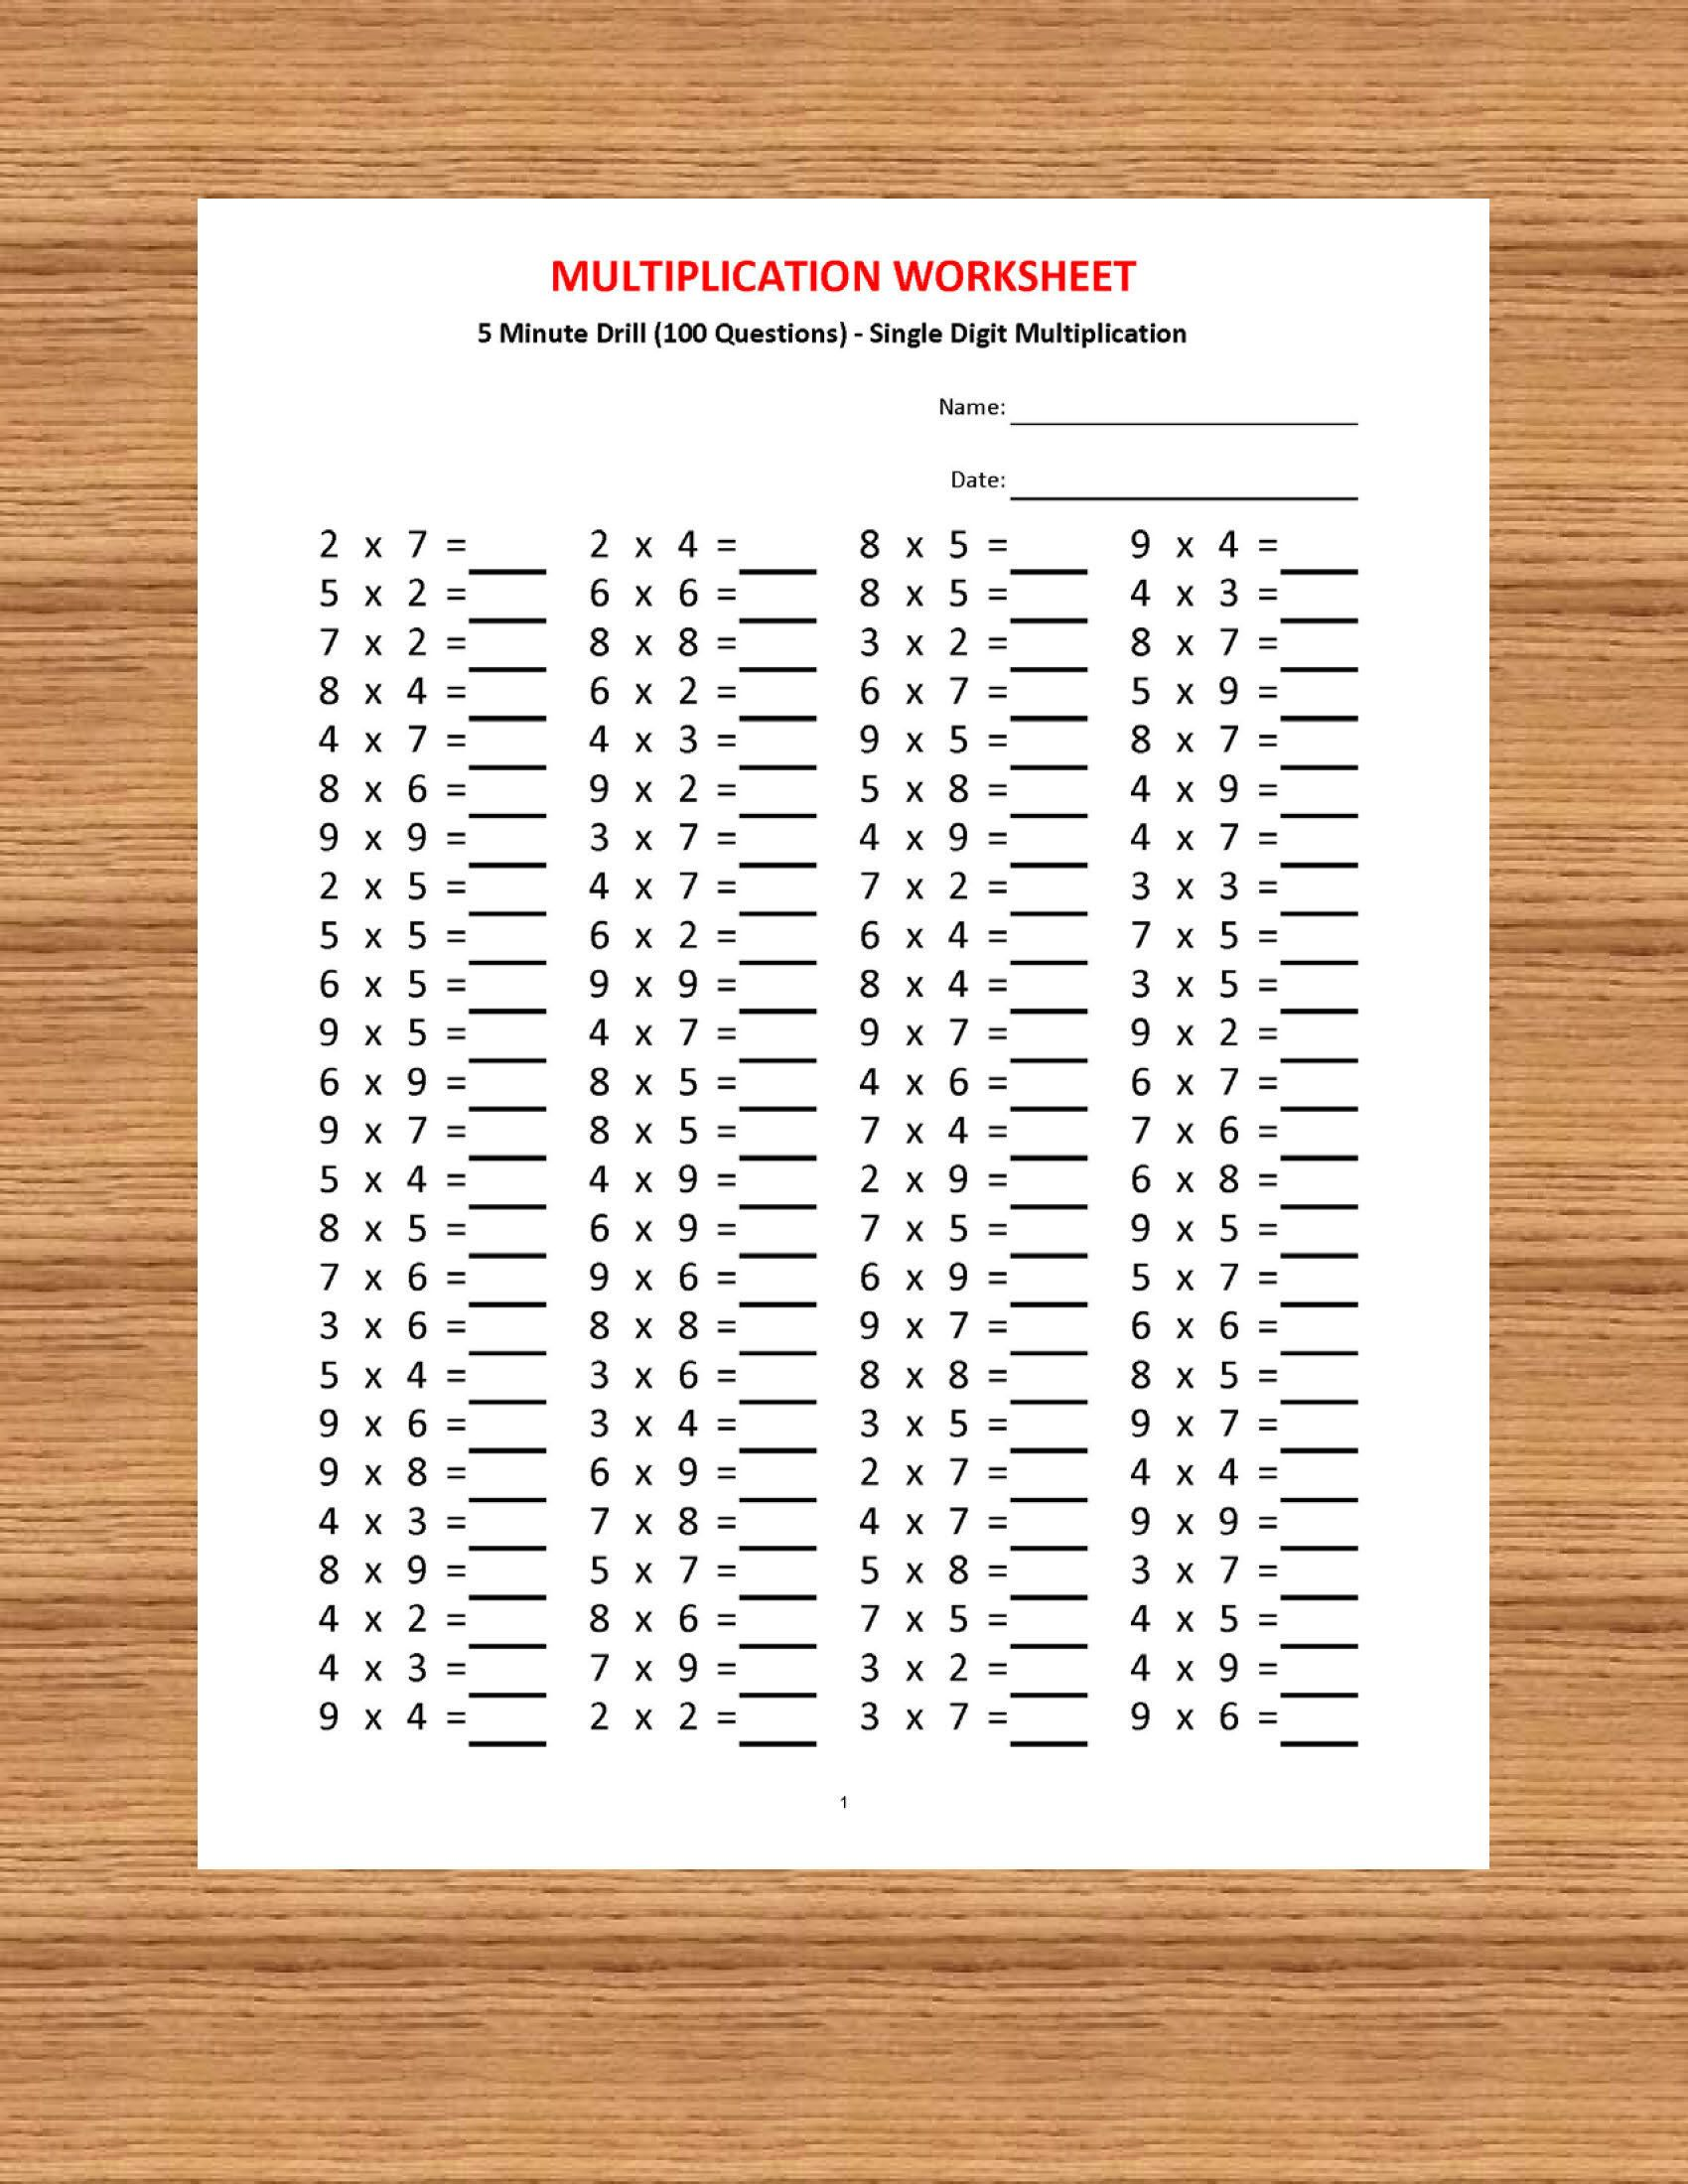 Multiplication 5 Minute Drill Worksheets With Answers Pdf Etsy In 2020 Math Addition Worksheets Math Worksheets 10th Grade Math Worksheets